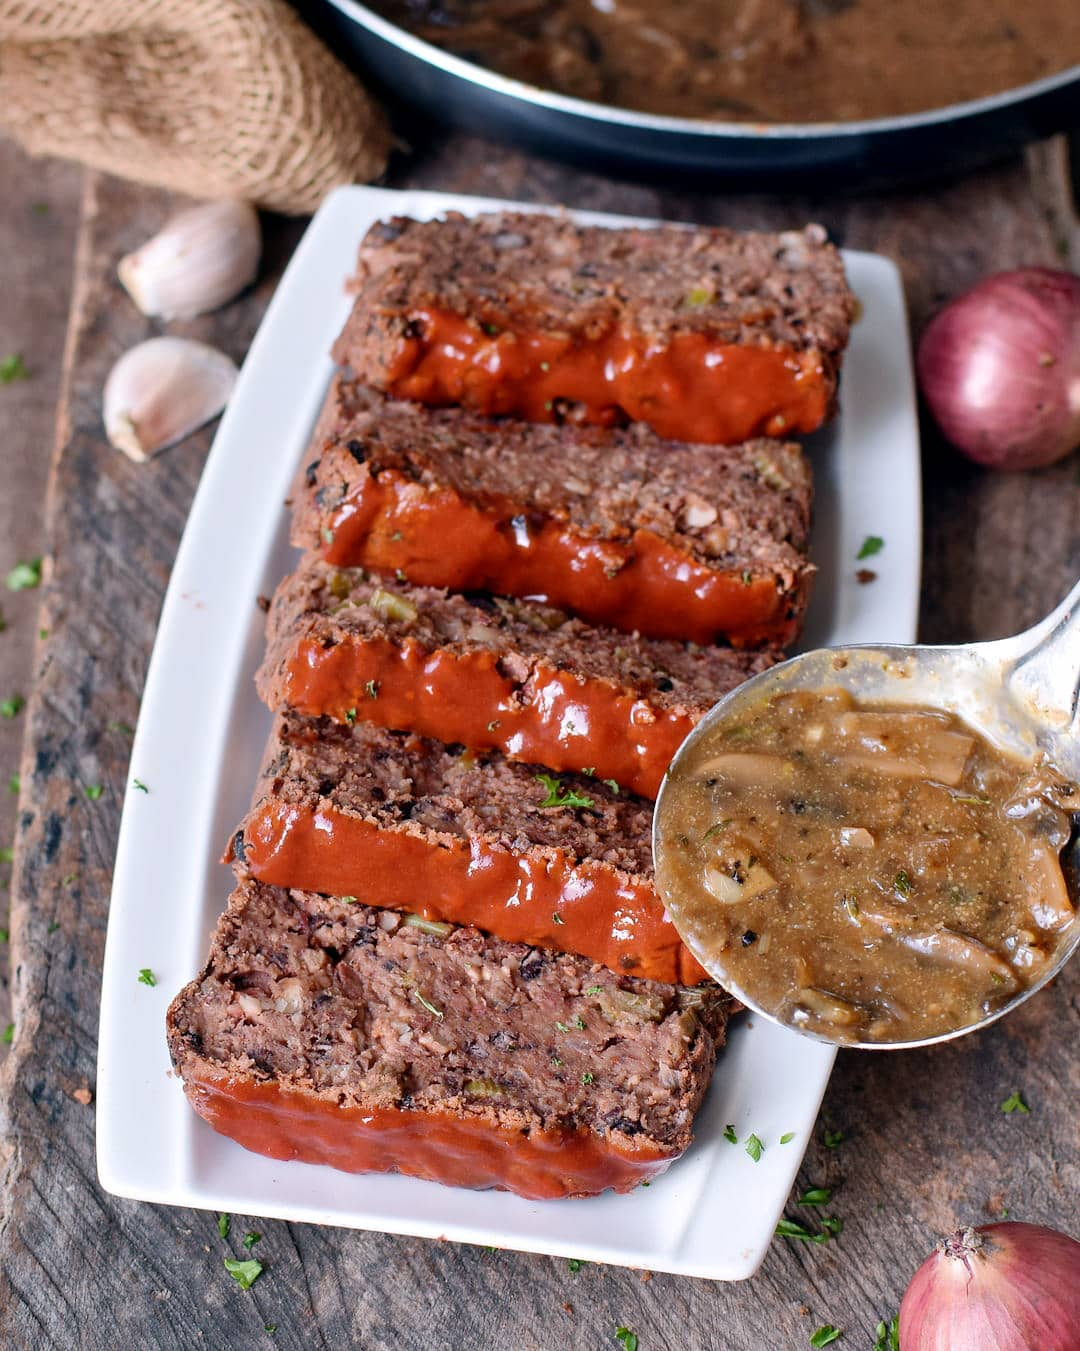 Vegan meatloaf on a plate with mushroom sauce (gravy)